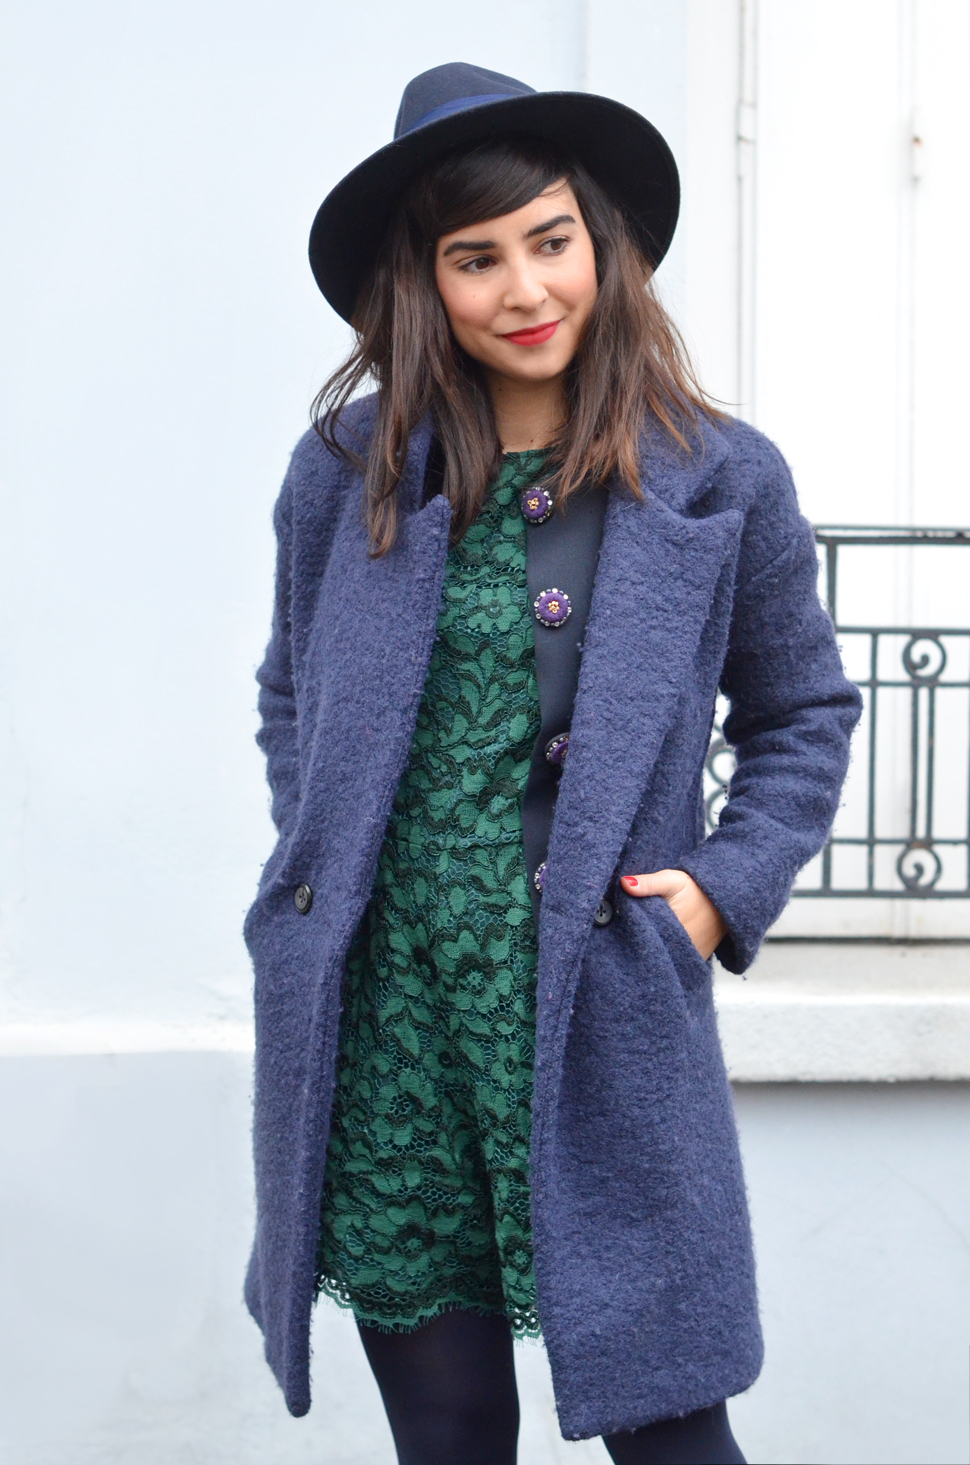 helloitsvalentine blogger parisien french hat fedora lace green blue Manoush Back To School jacket veste